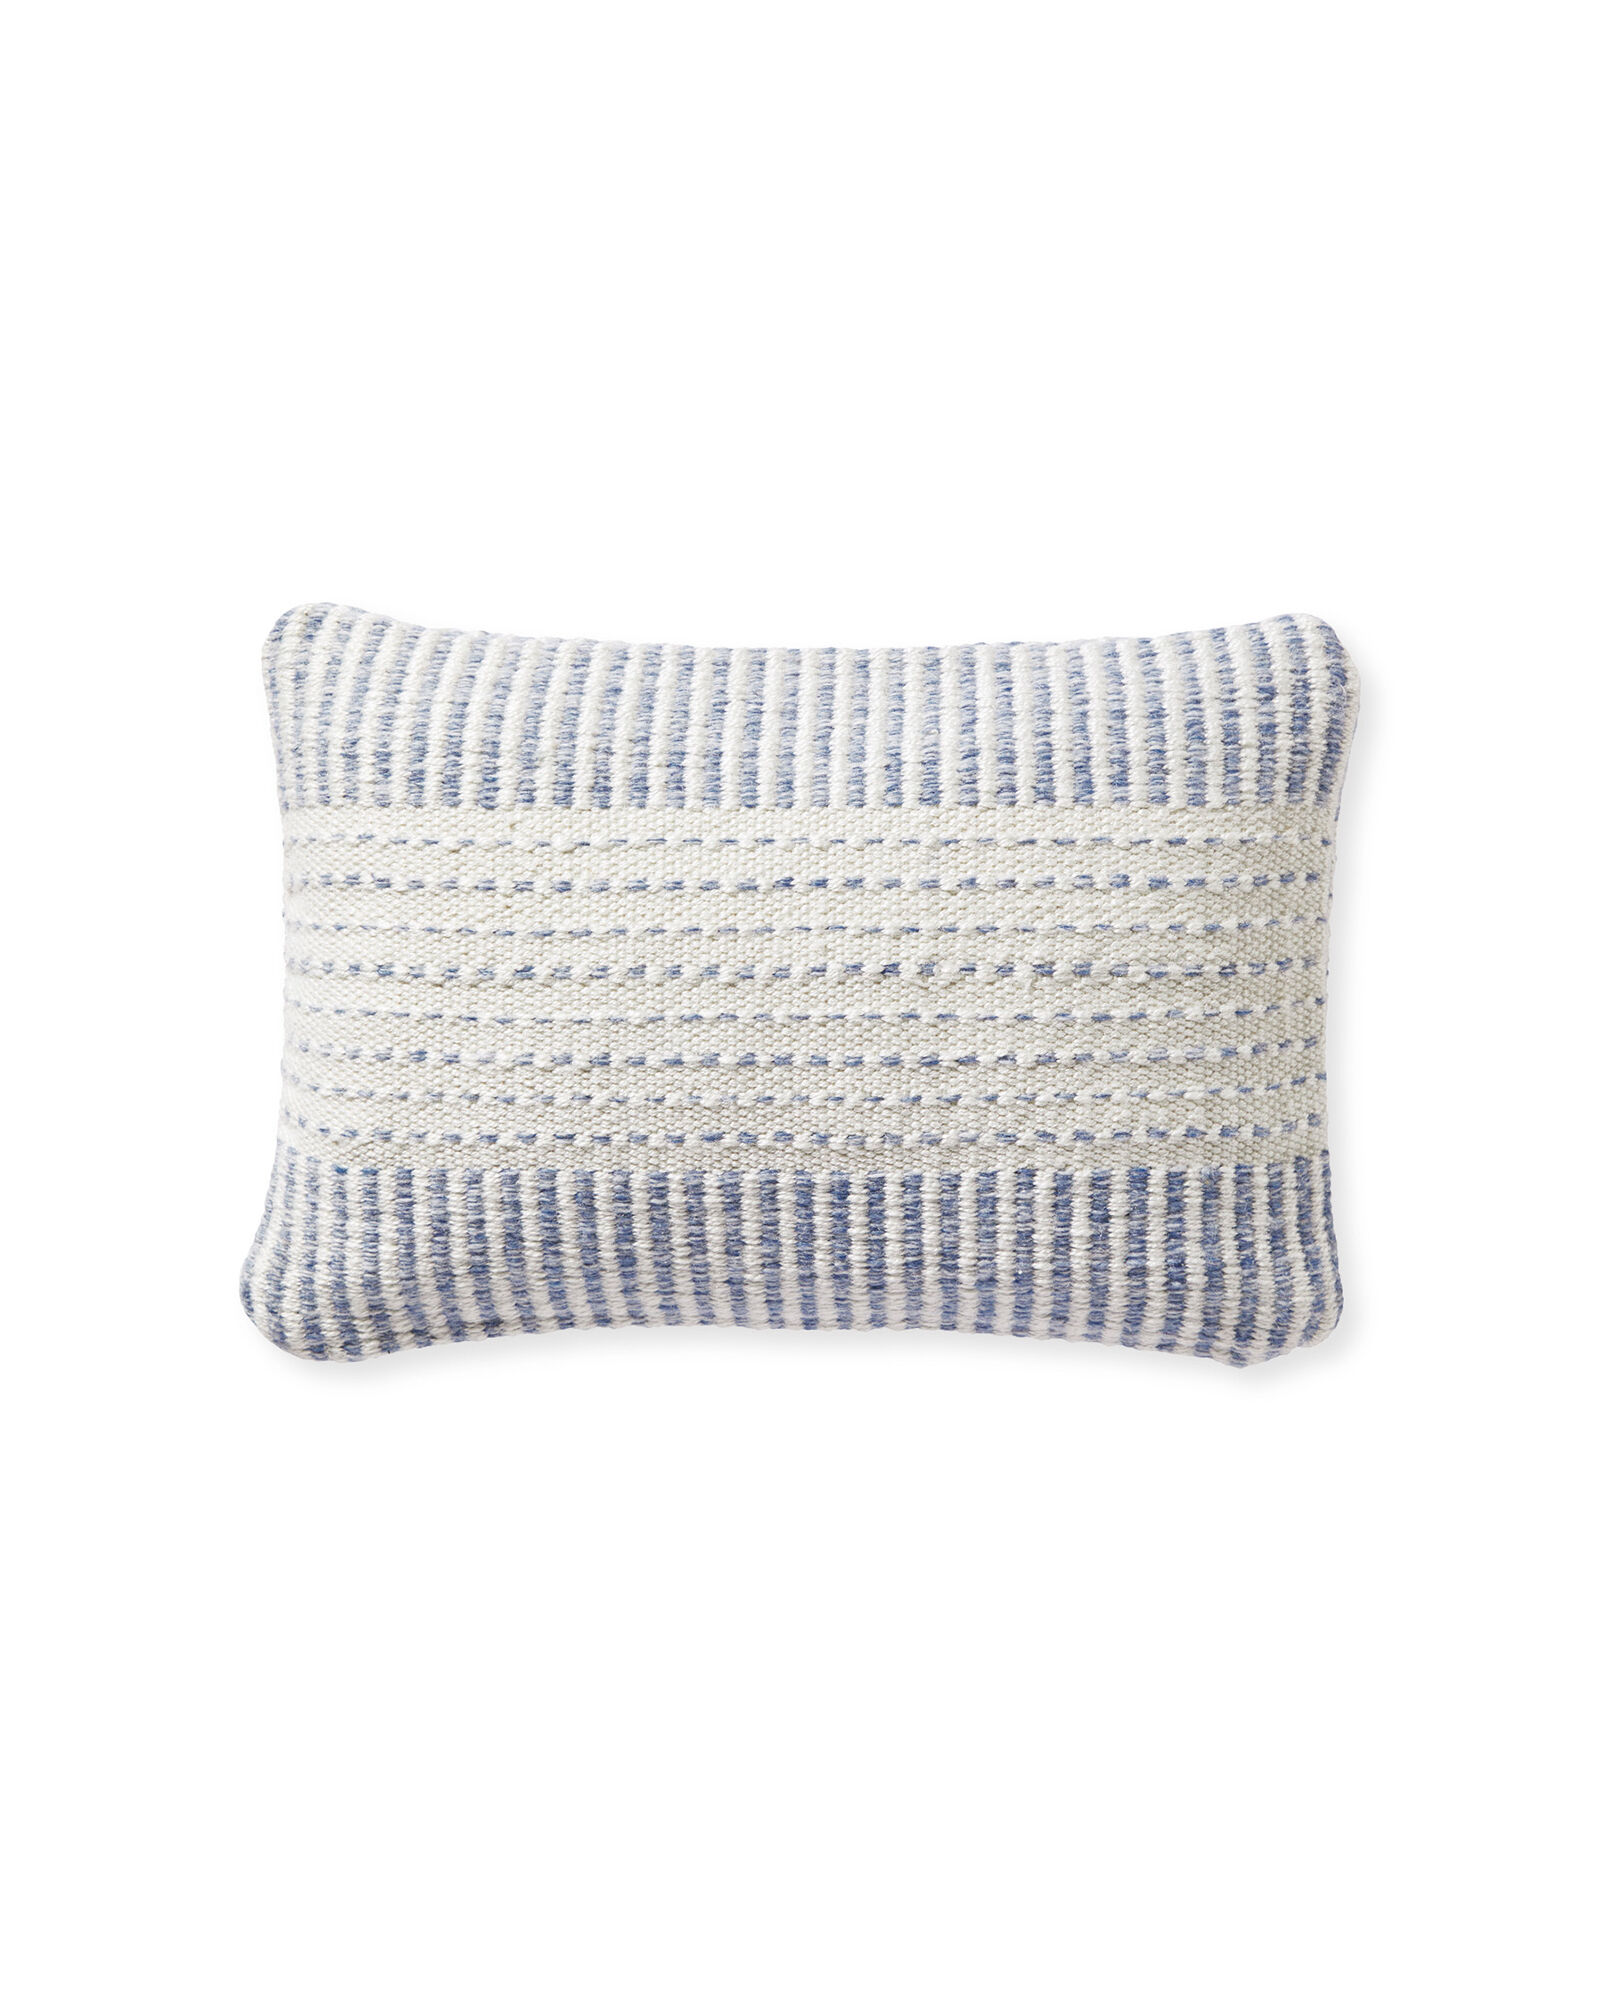 Alba Pillow Cover